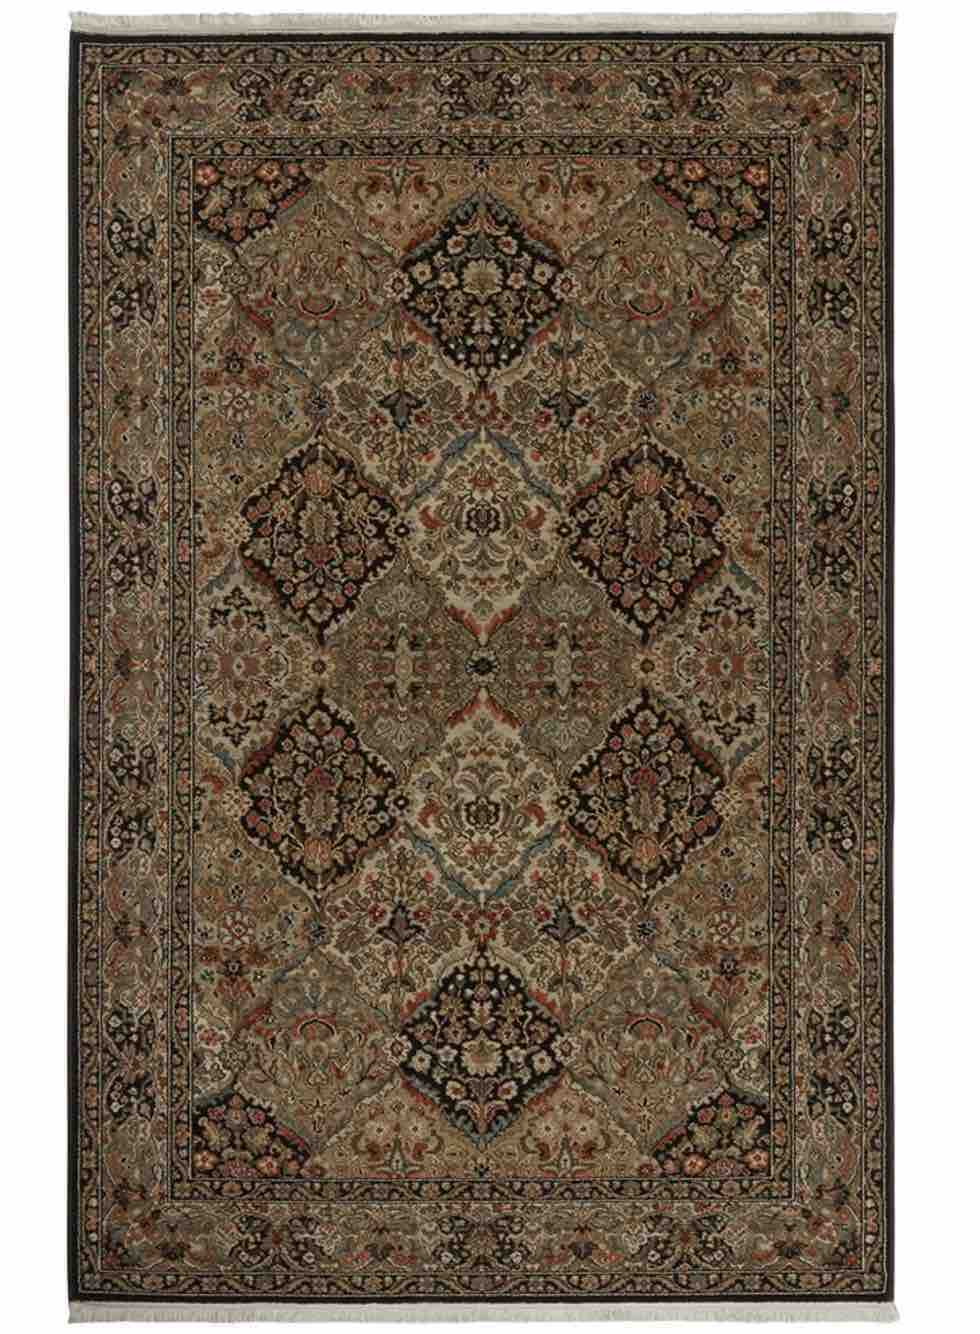 Original Karastan Empress Kirman Black Rug